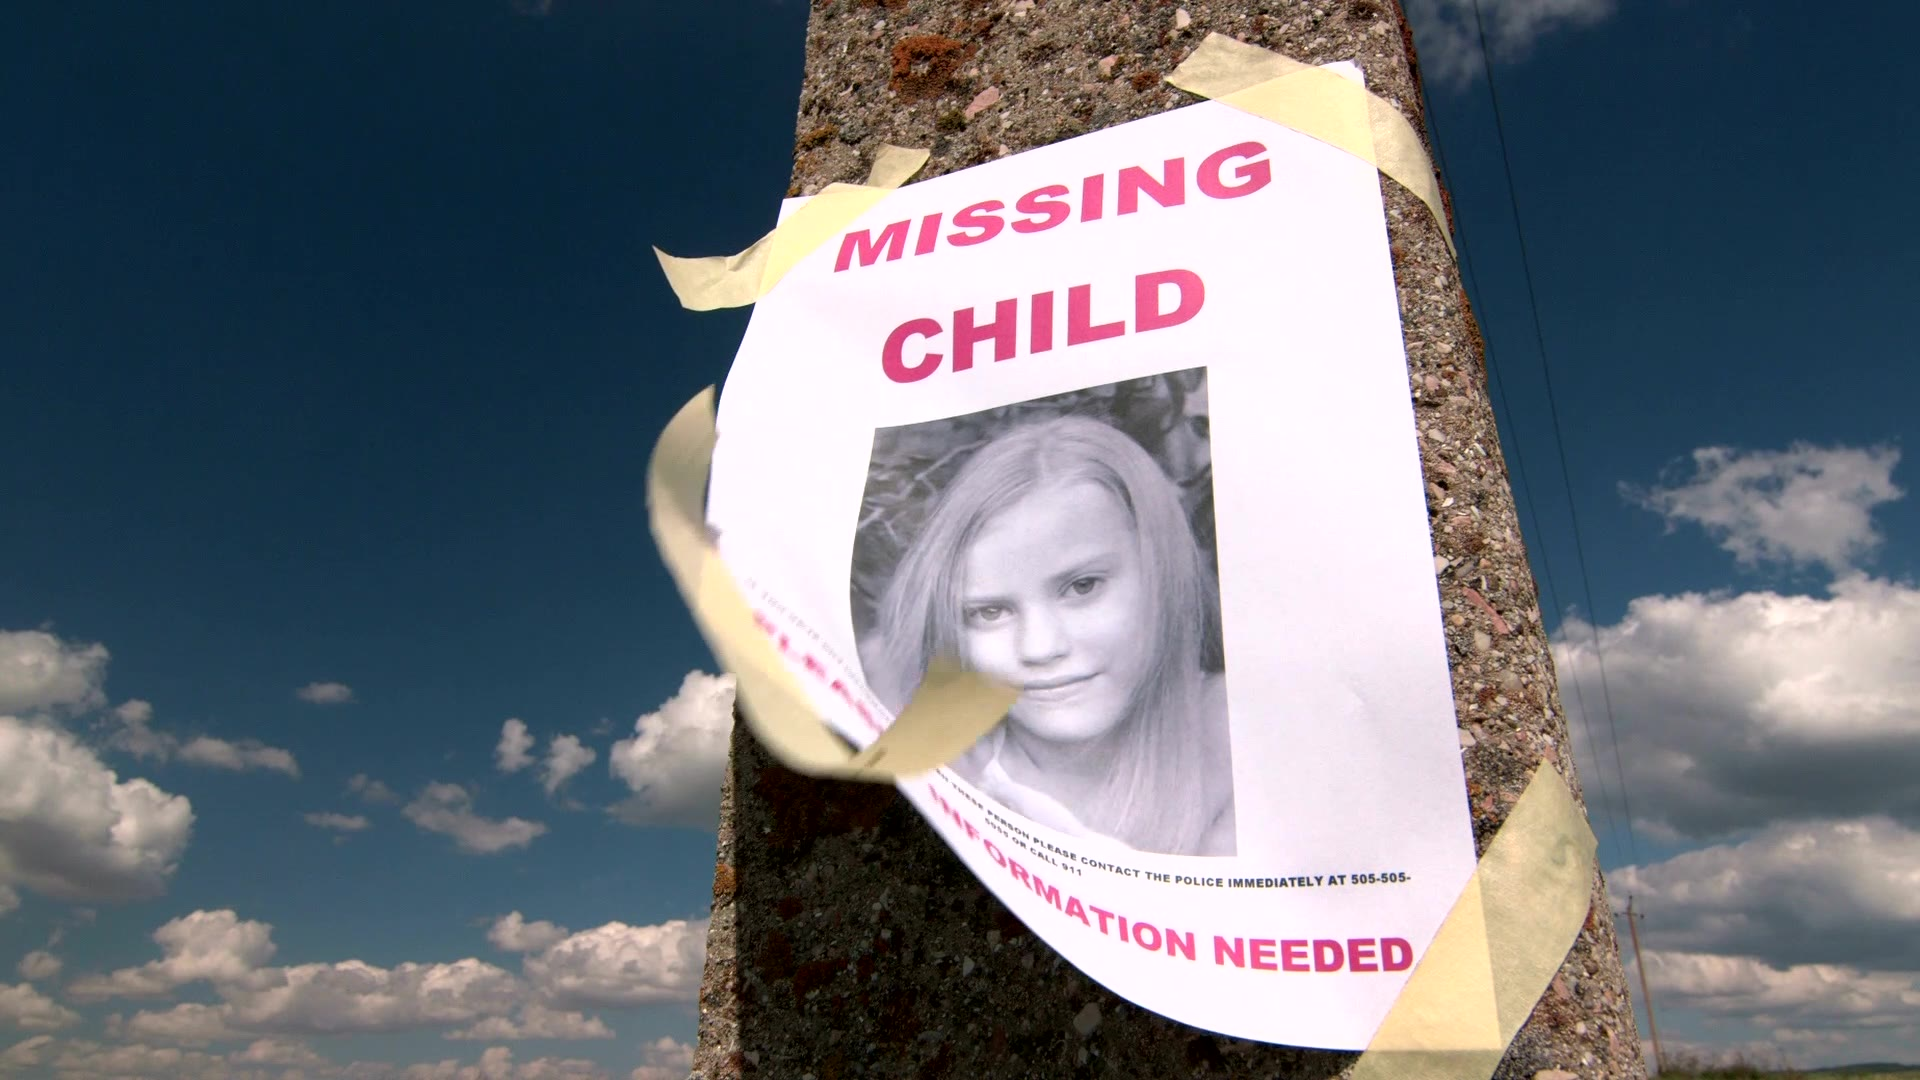 Tips On How To Report A Missing Child